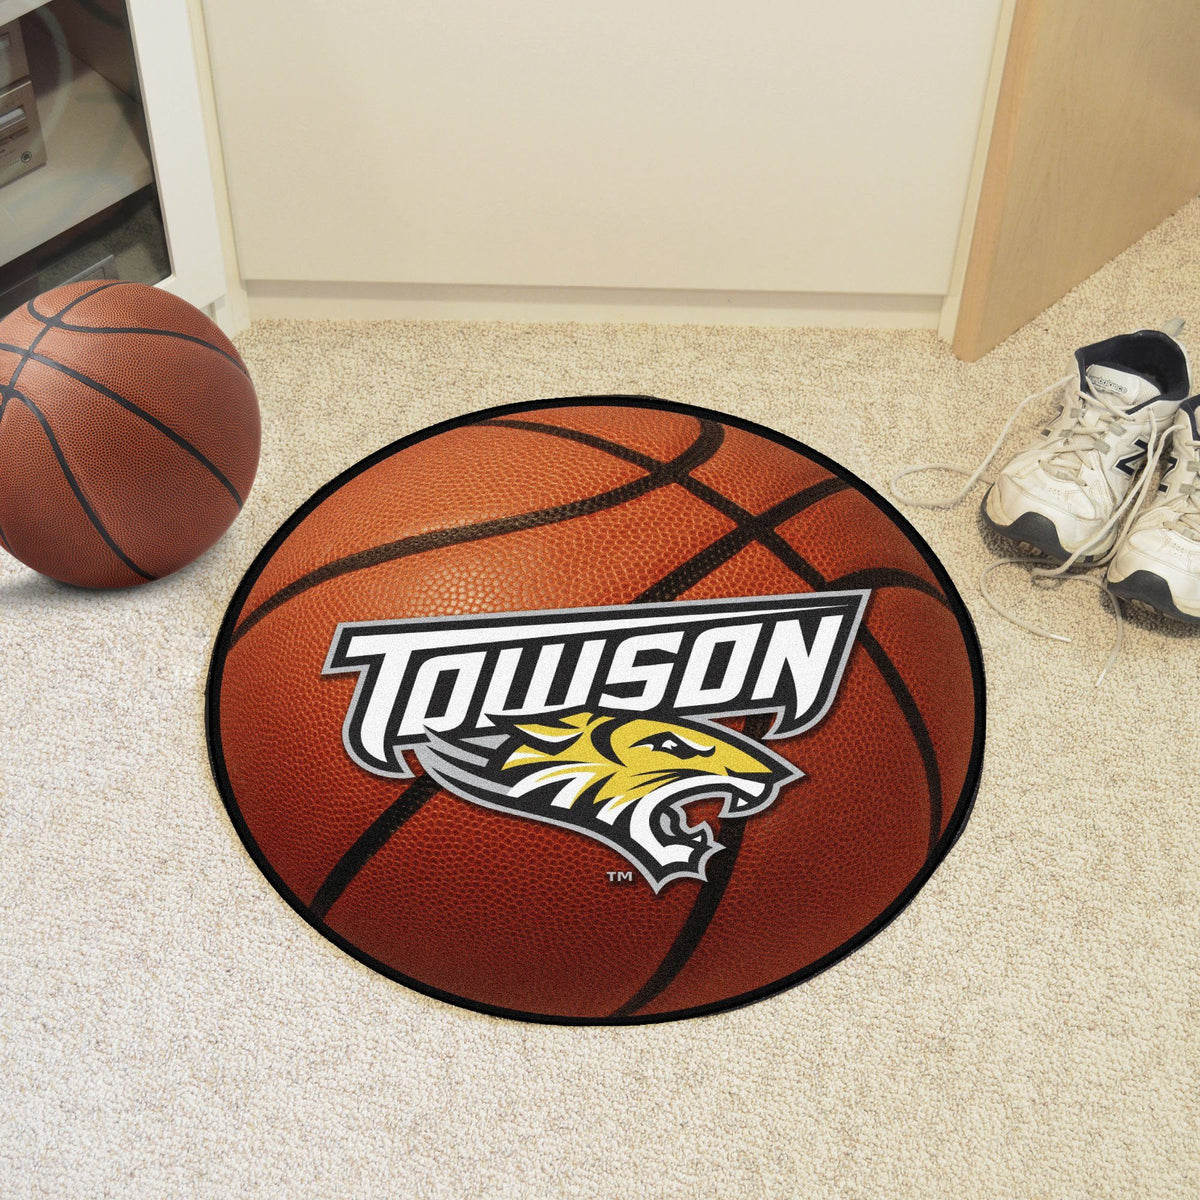 Collegiate - Basketball Mat: T - Z Collegiate Mats, Rectangular Mats, Basketball Mat, Collegiate, Home Fan Mats Towson 2